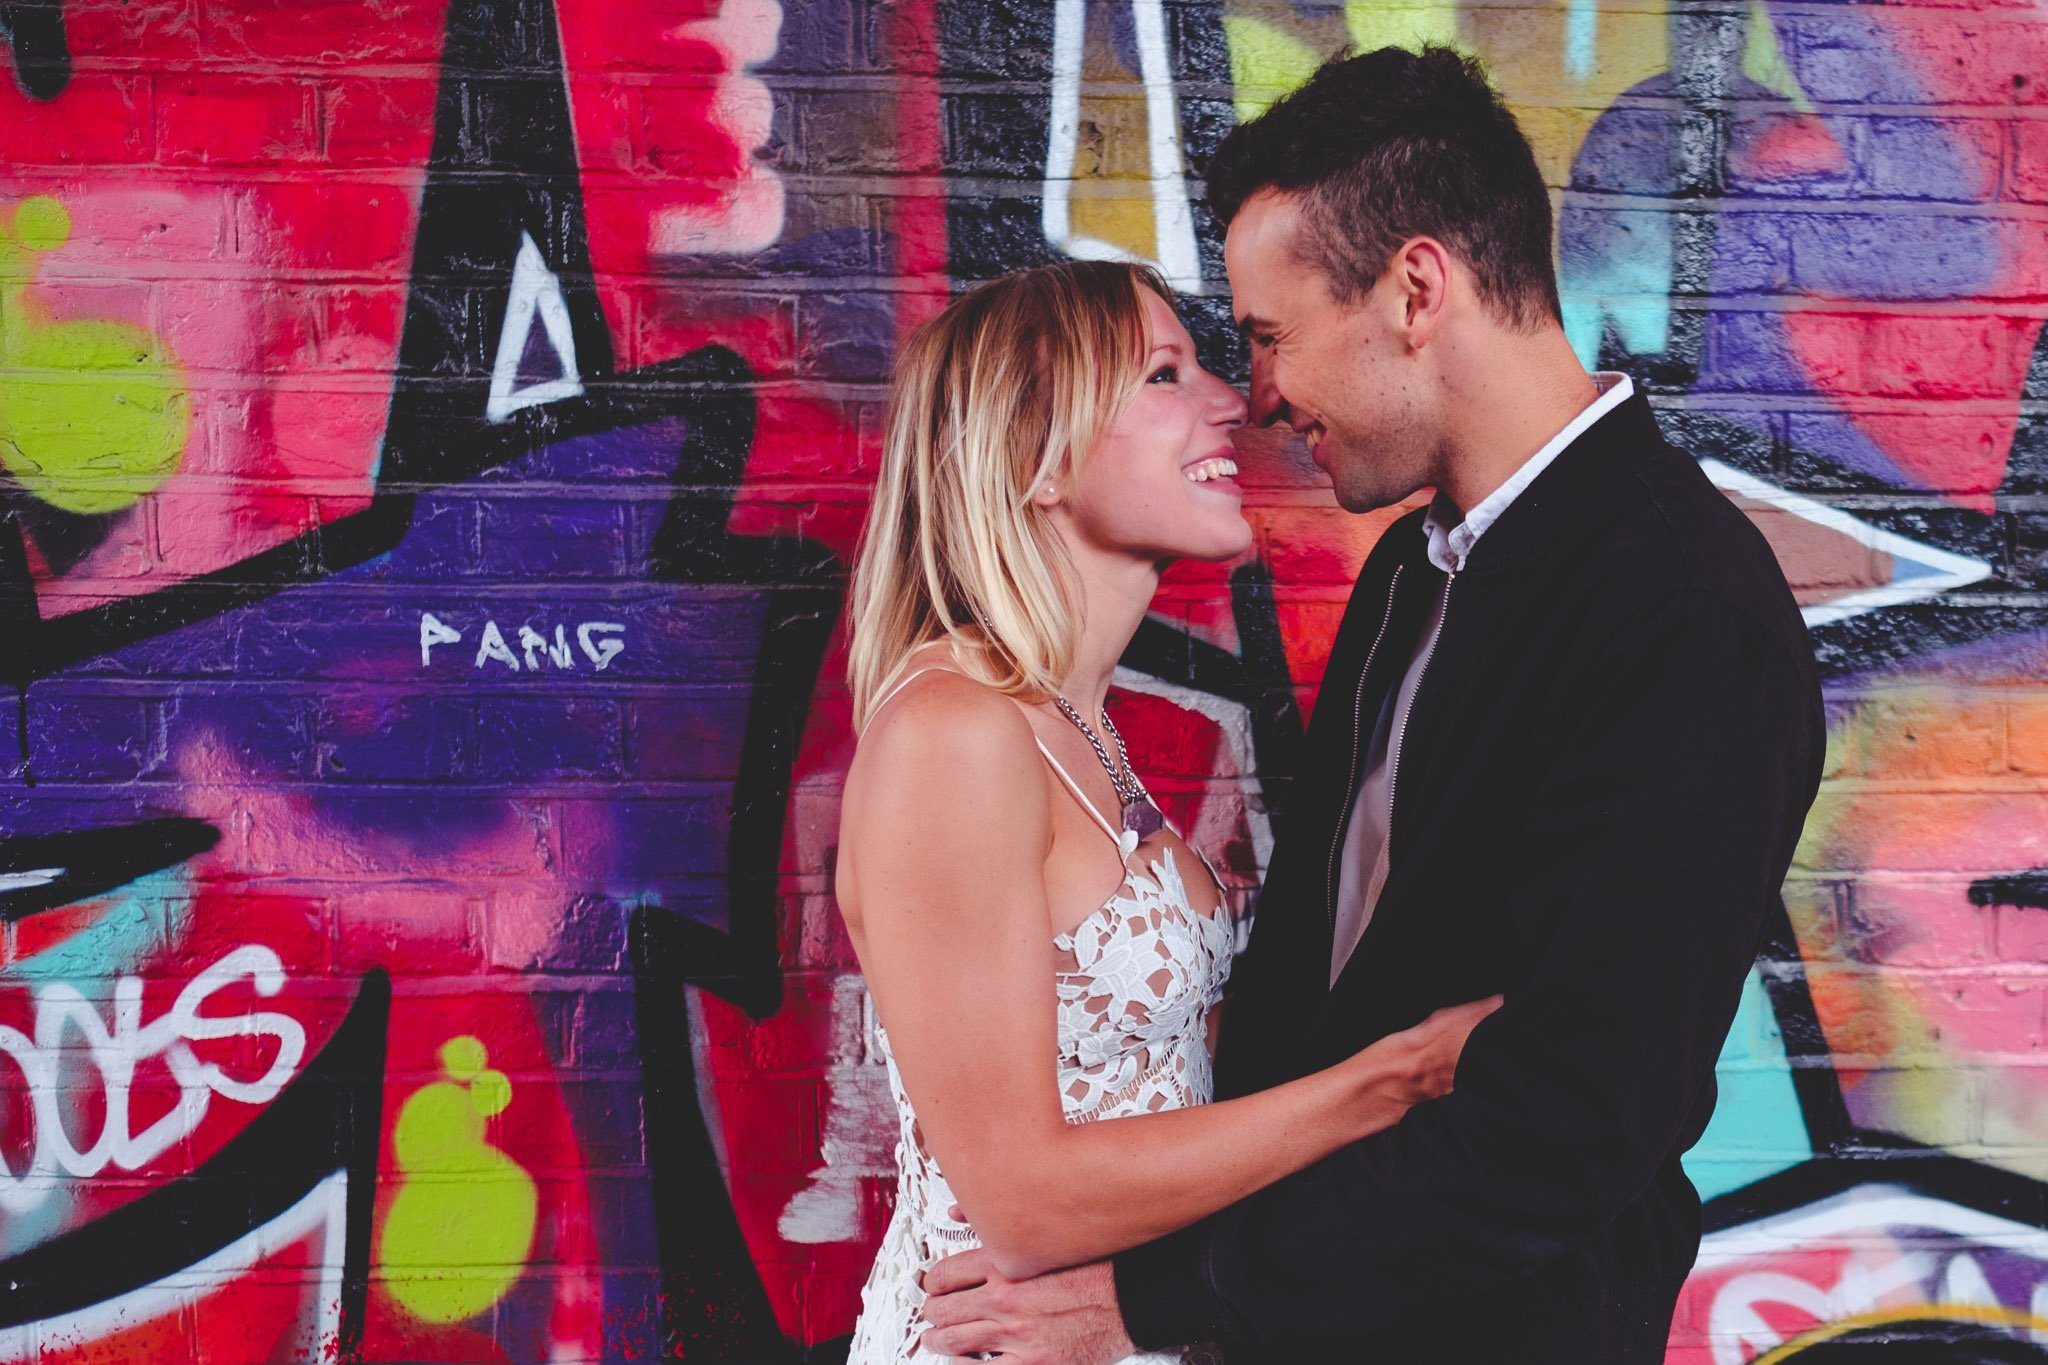 A couple cuddle in front of some graffiti in Hackney Wick, London for an engagement portrait. Photography by thatthingyoupluck